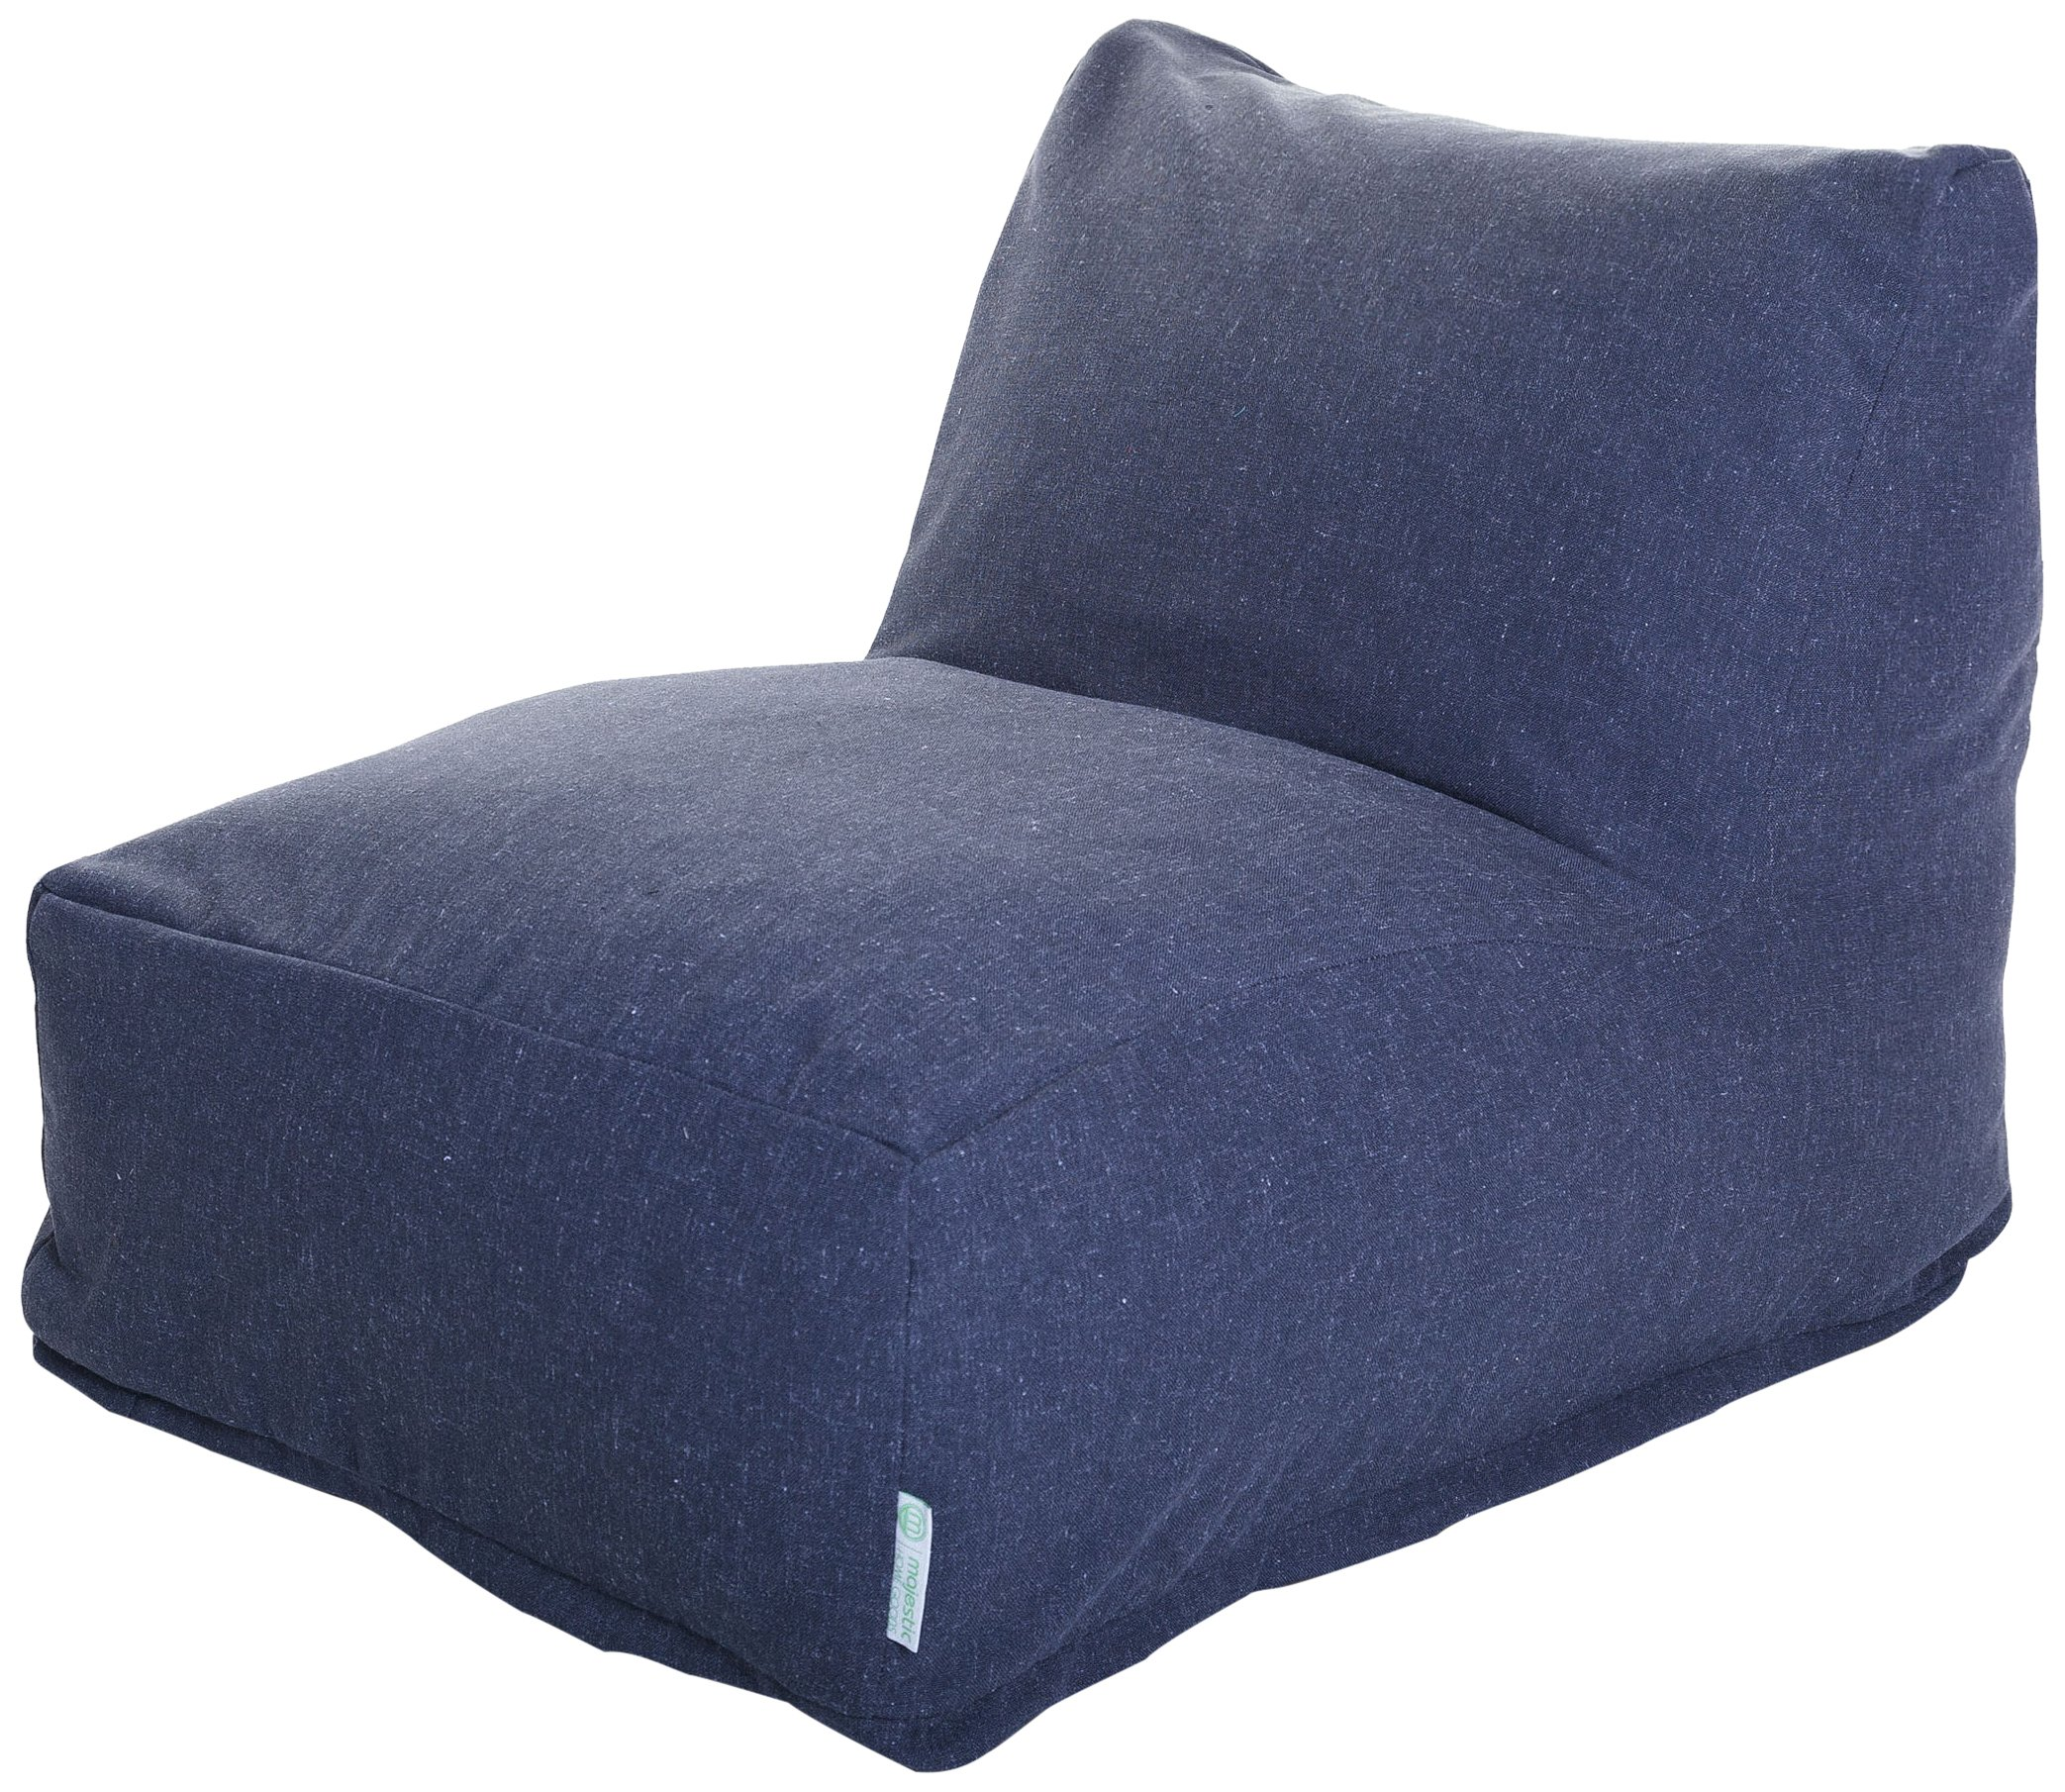 Majestic Home Goods Wales Bean Bag Chair Lounger, Navy